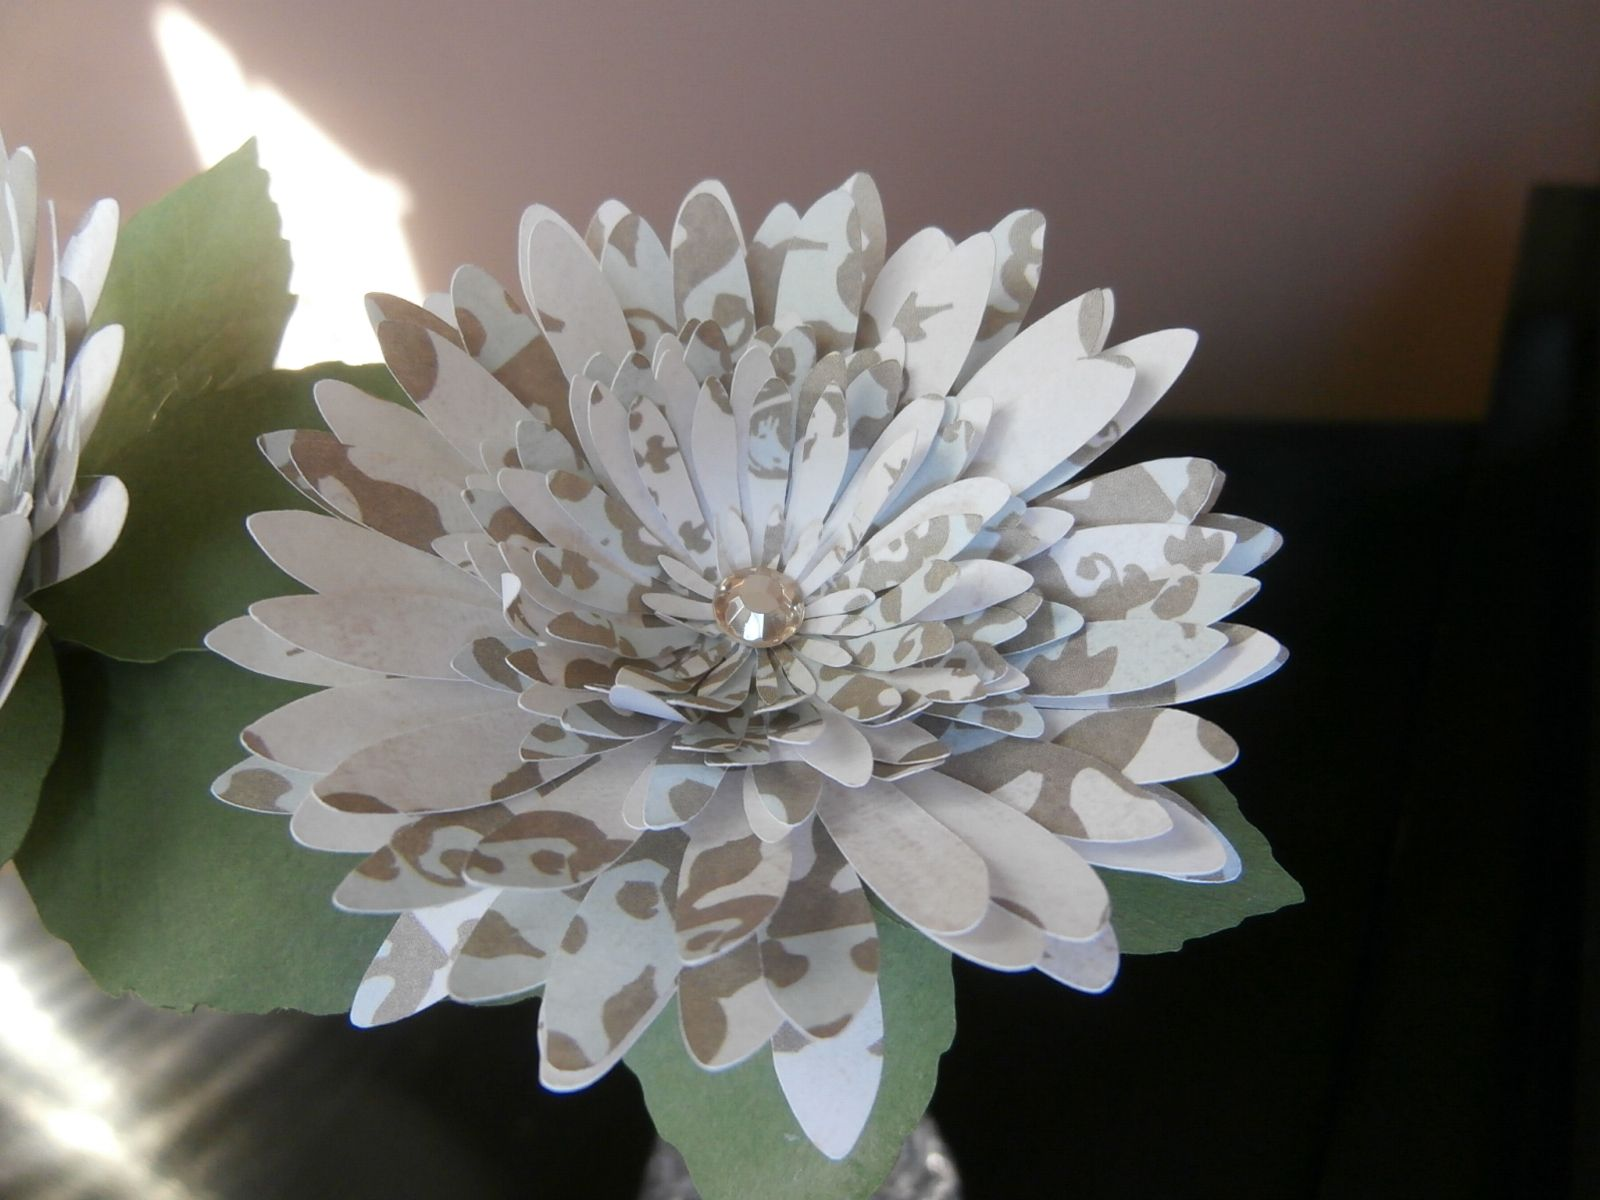 Homemade paper flowers choice image flower decoration ideas homemade paper flowers paper crafts pinterest homemade homemade paper flowers mightylinksfo choice image mightylinksfo Image collections